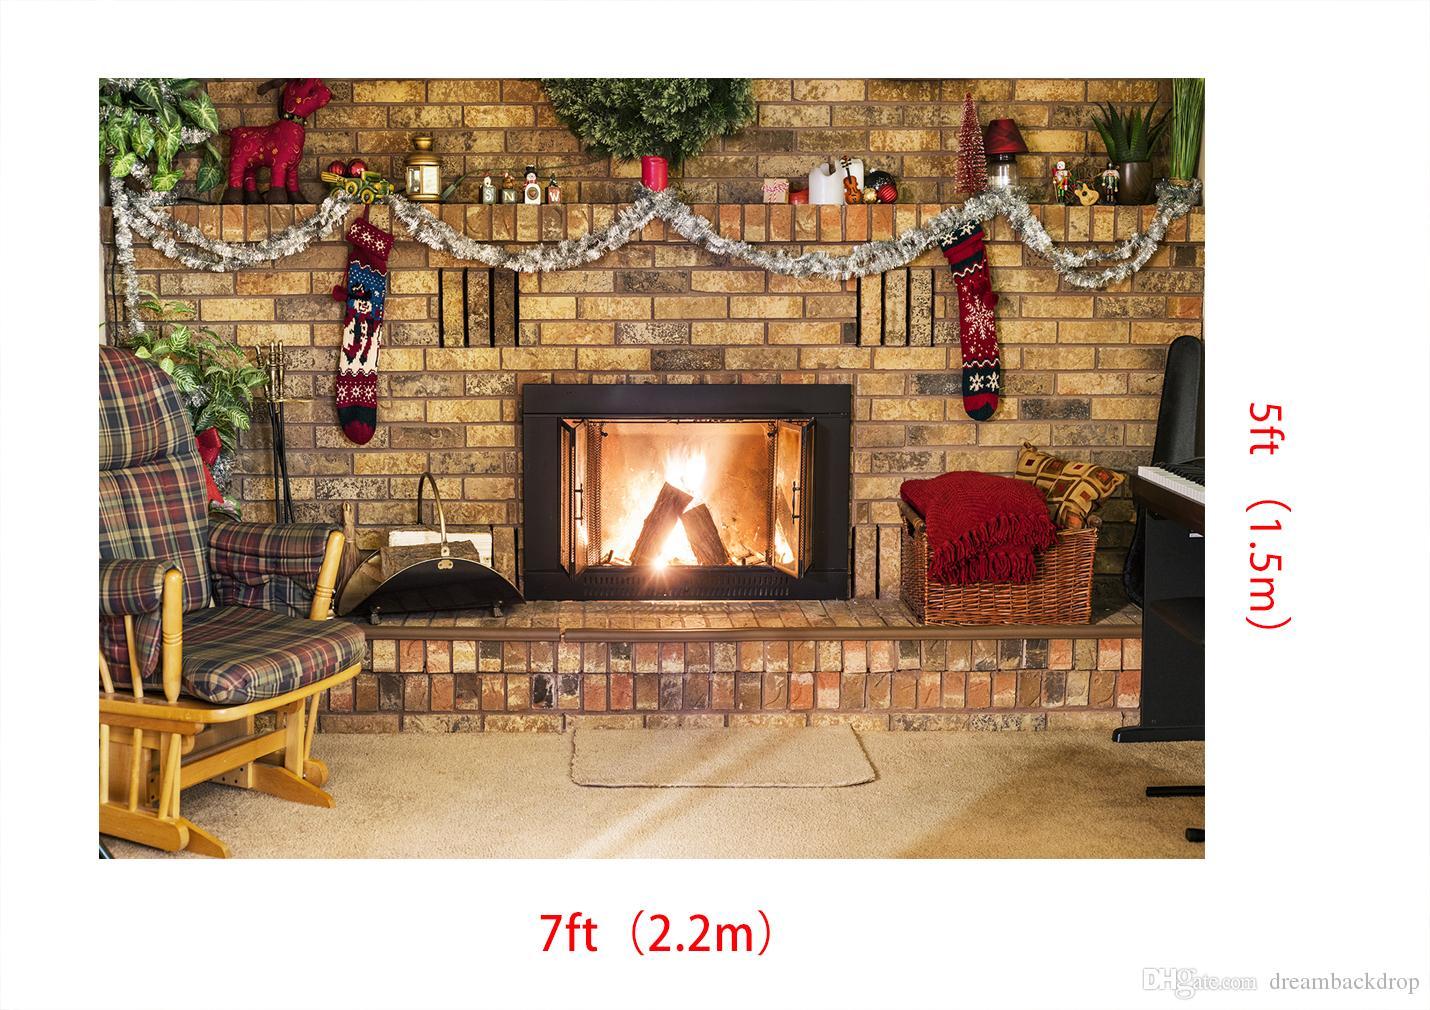 2019 Dream 7x5ft 220x150cm Christmas Backdrop Brick Wall Fireplace Photography Backround For Holiday Party Shoot Xmas Decoration Backdrops Studio From